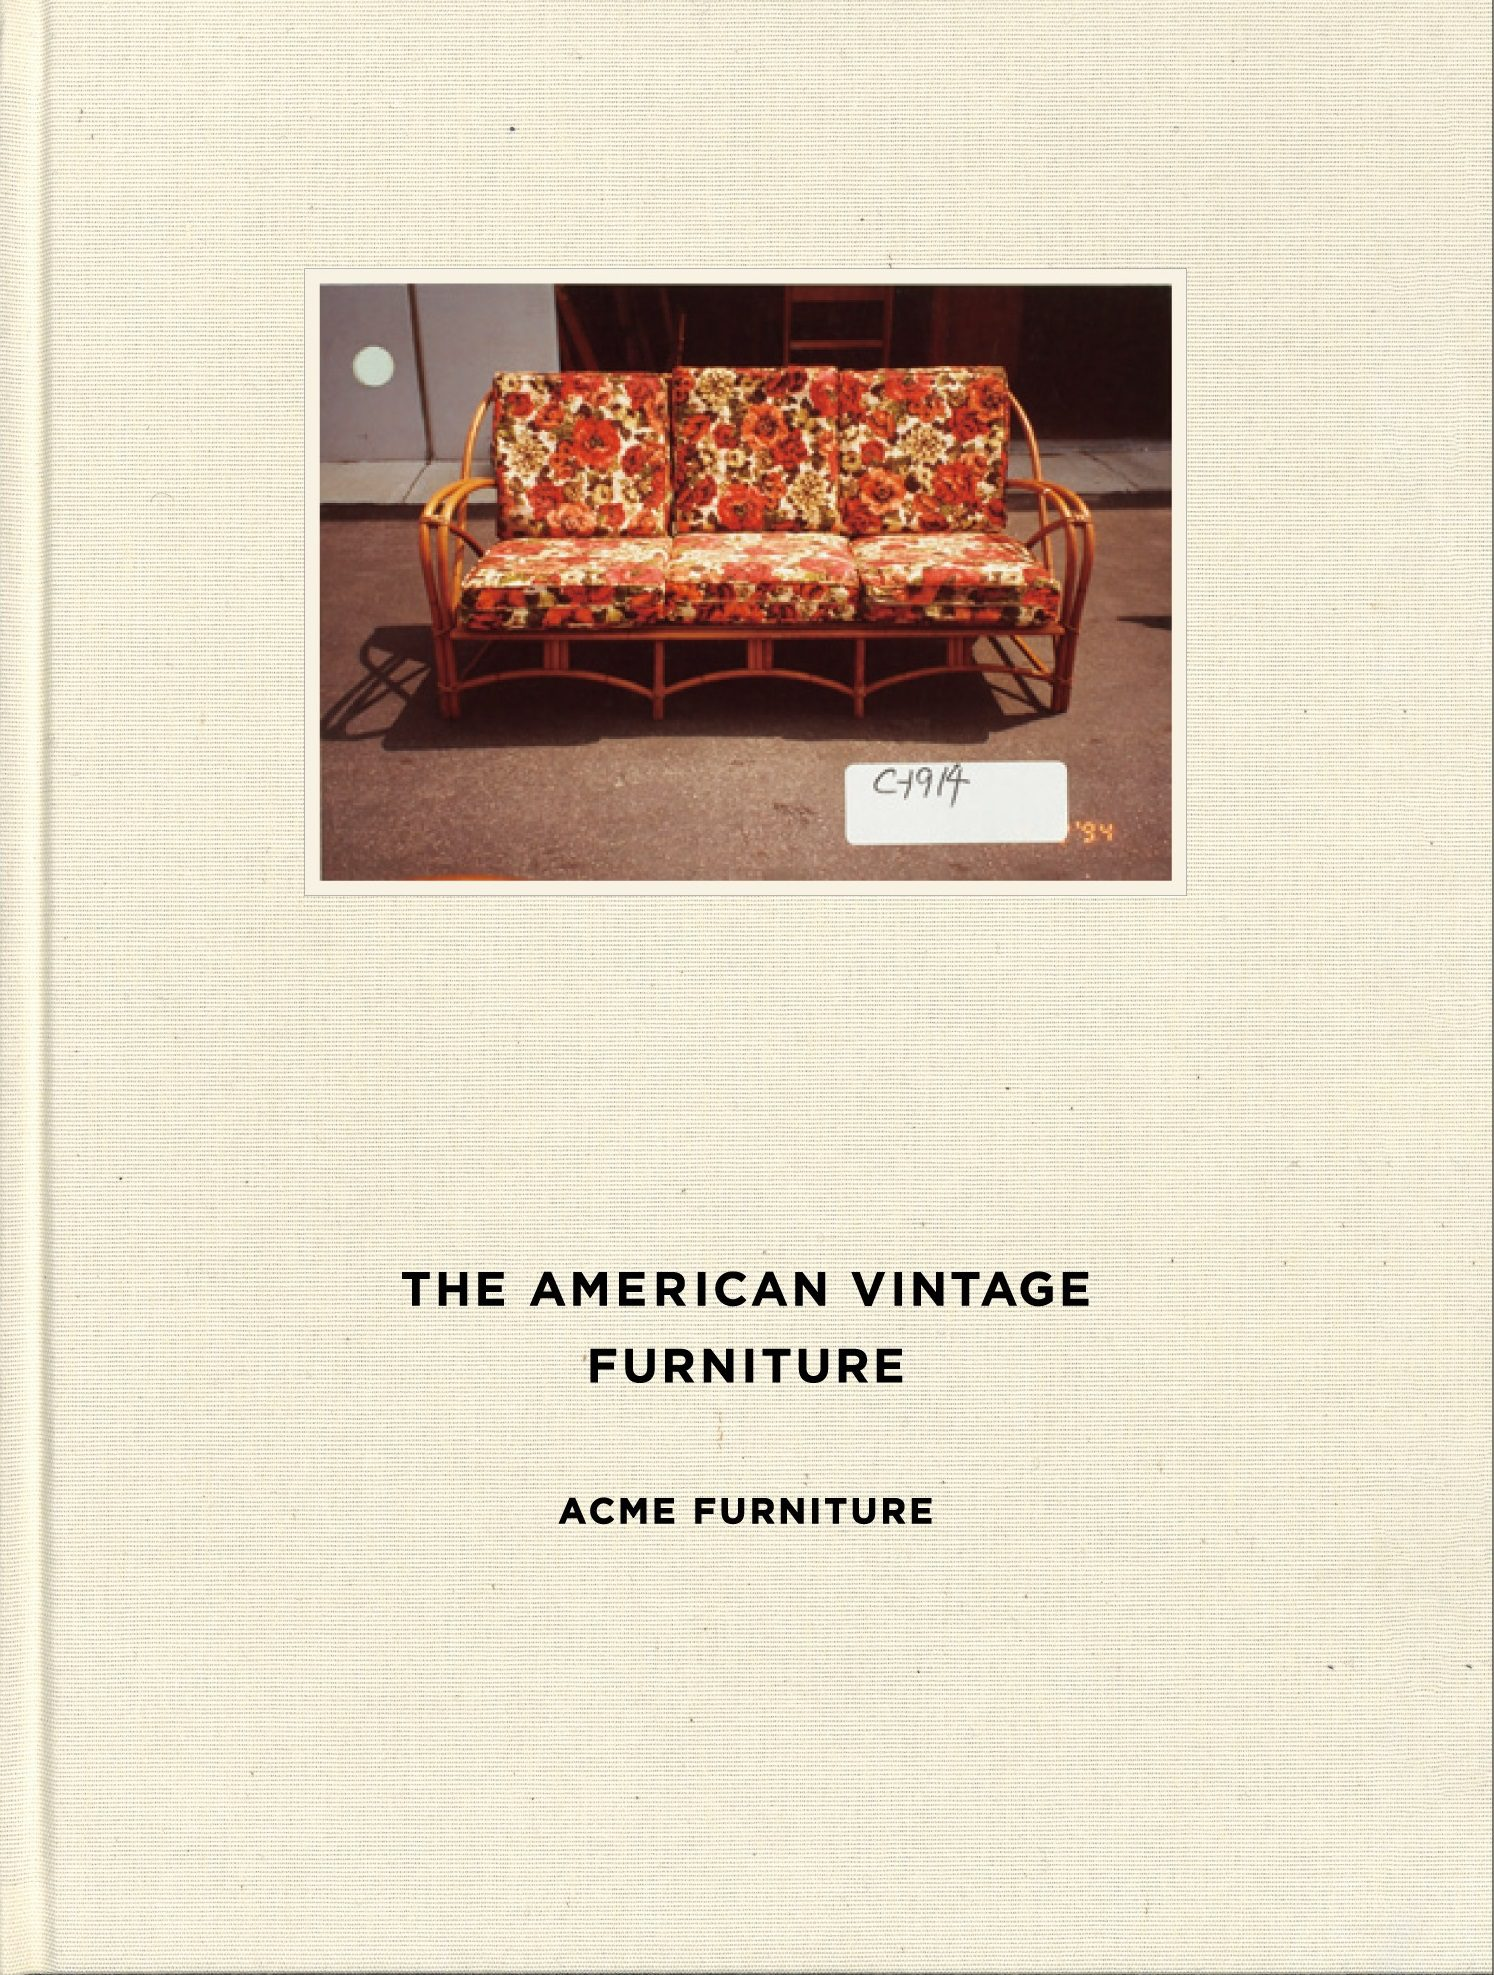 『THE AMERICAN VINTAGE FURNITURE』